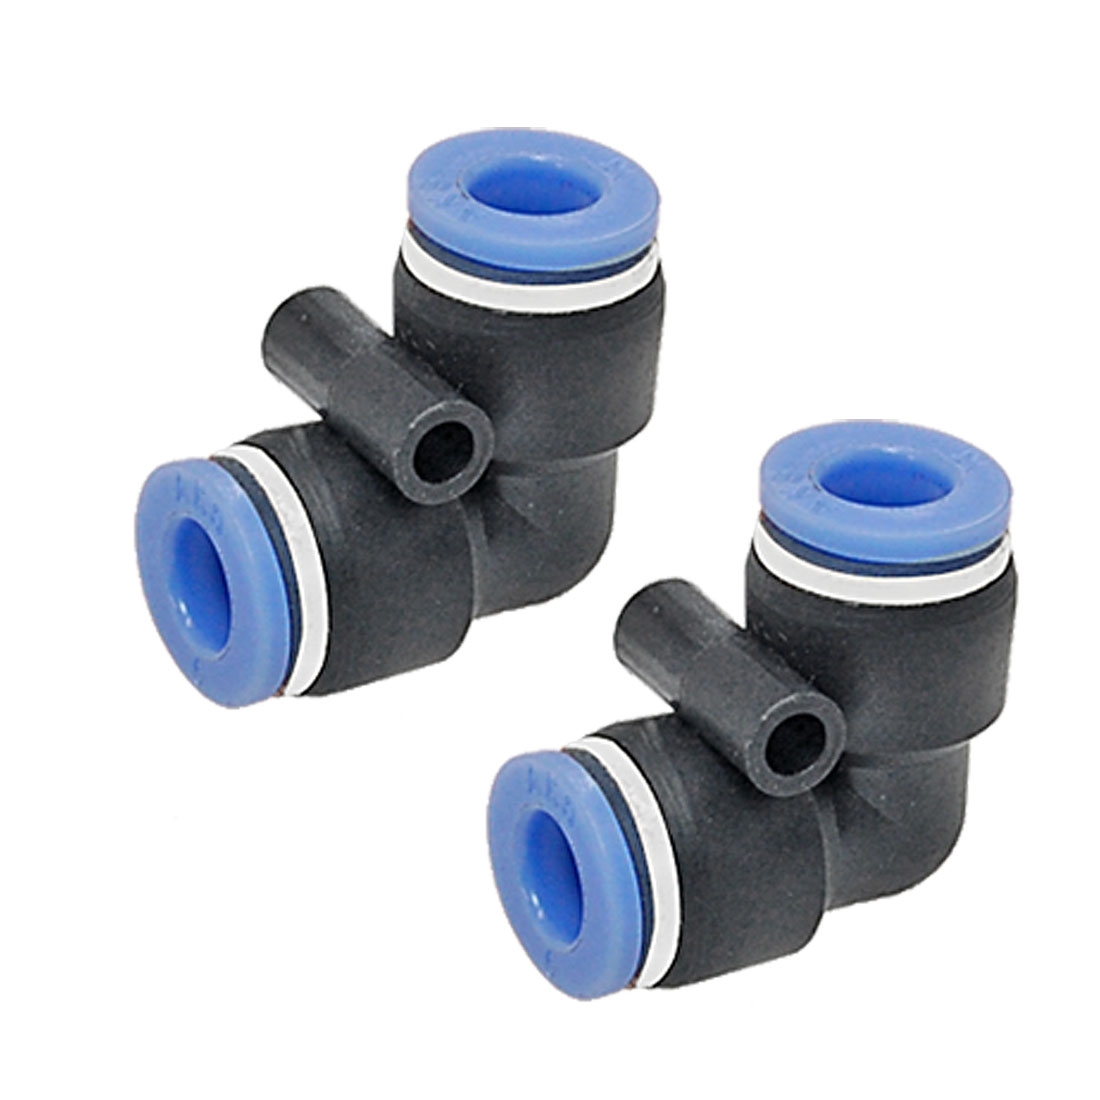 6 to 6mm Push In Right-angled Connector Round Fittings